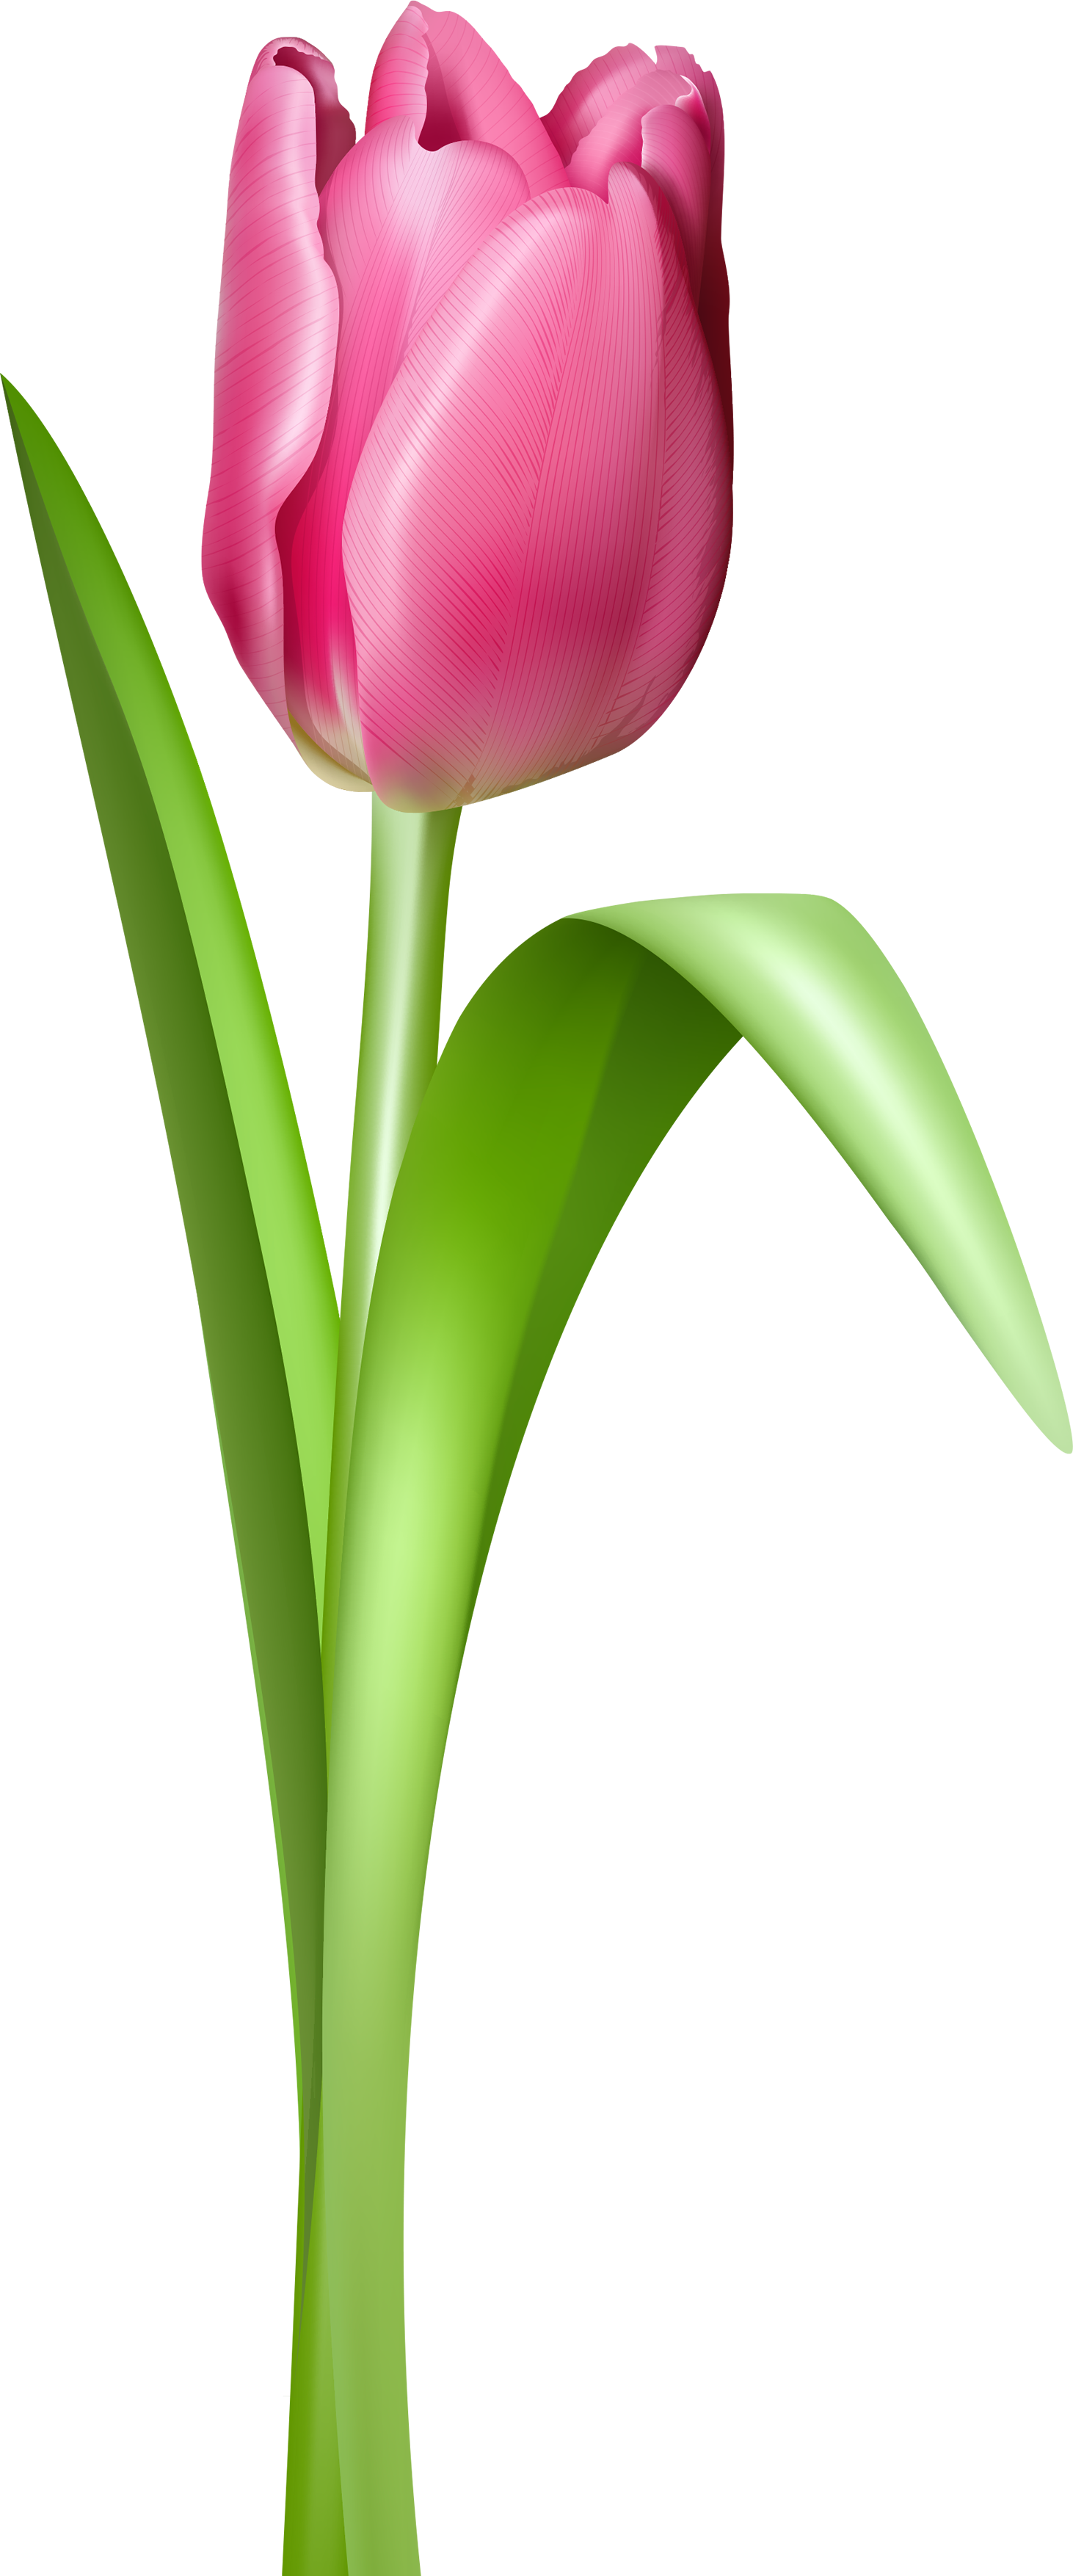 Poppy clipart 5 flower. Tulip png image photos